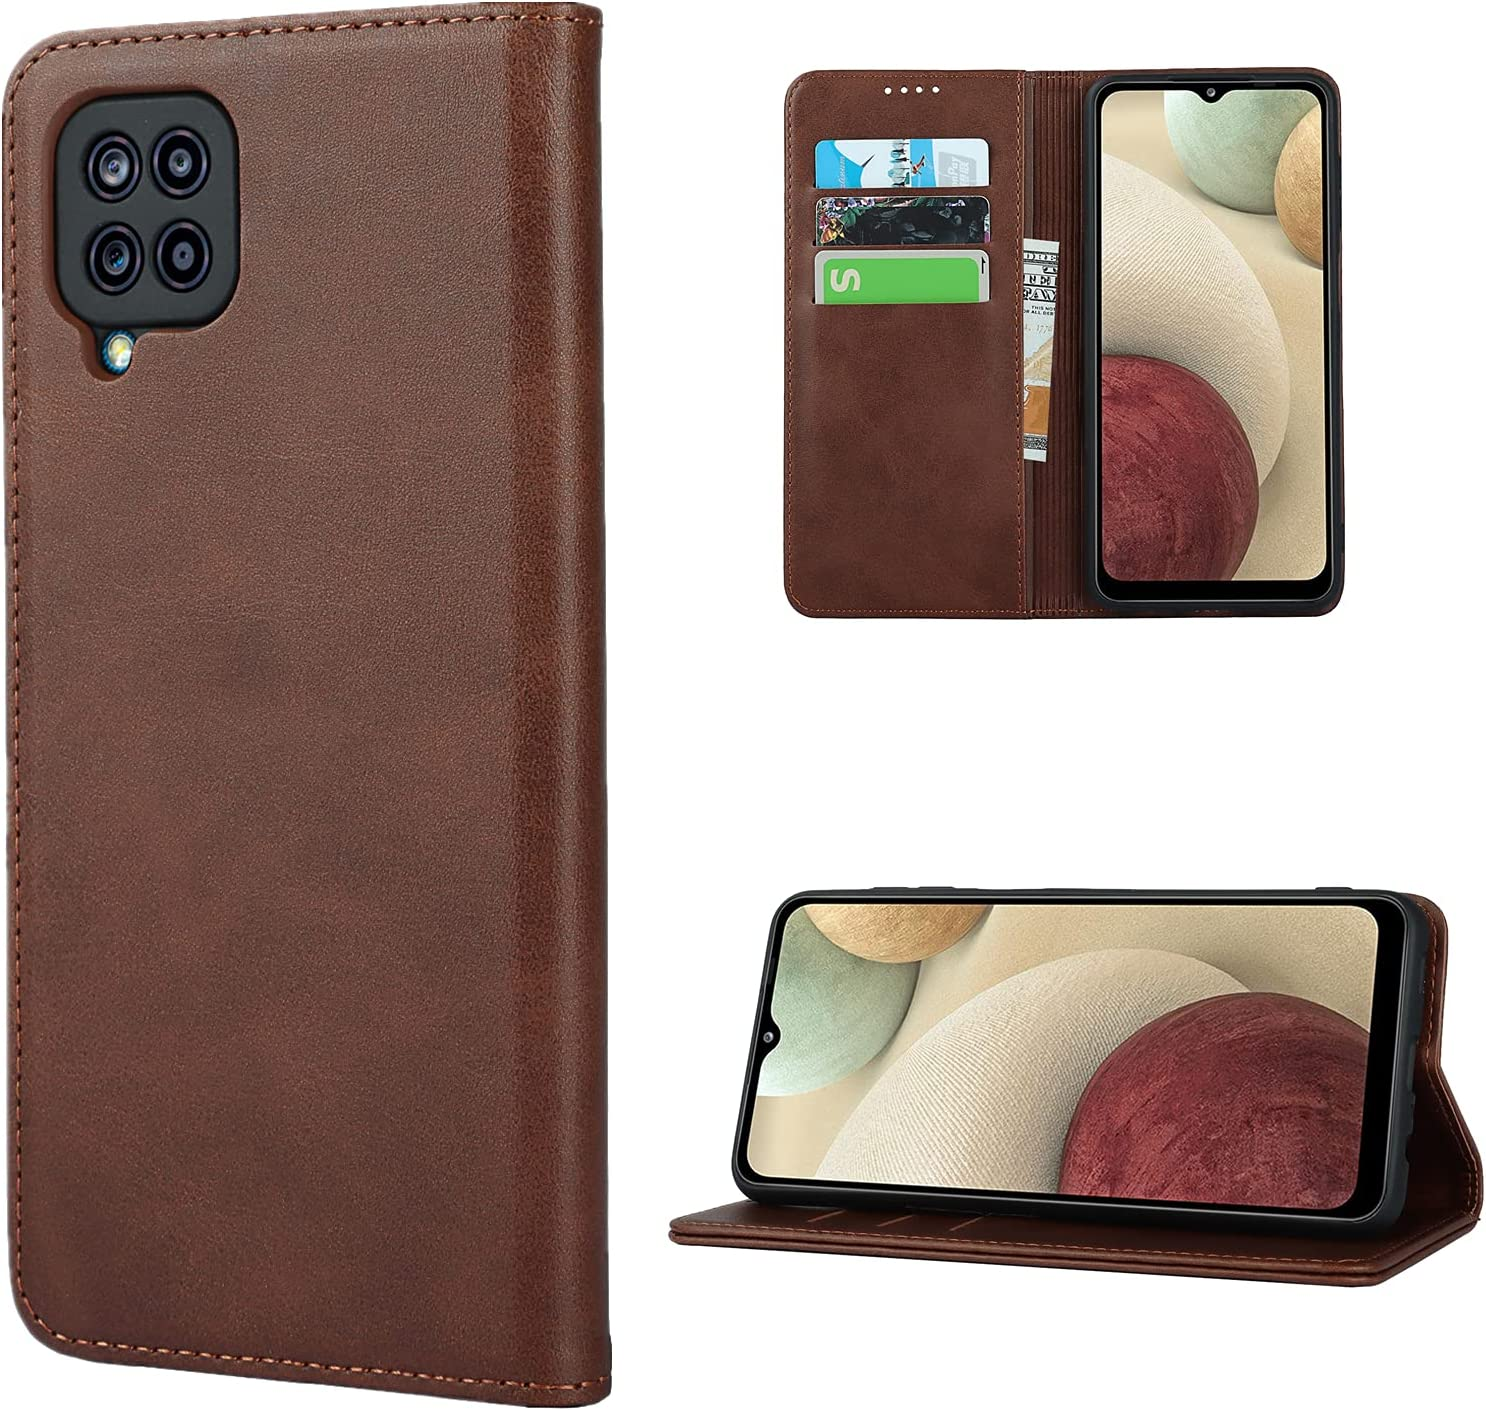 JWS-C Samsung Galaxy A12 Wallet Case with Card Holder Slots Flip Cover 【 Leather 】 for Women Samsung Galaxy A12- Dark Brown